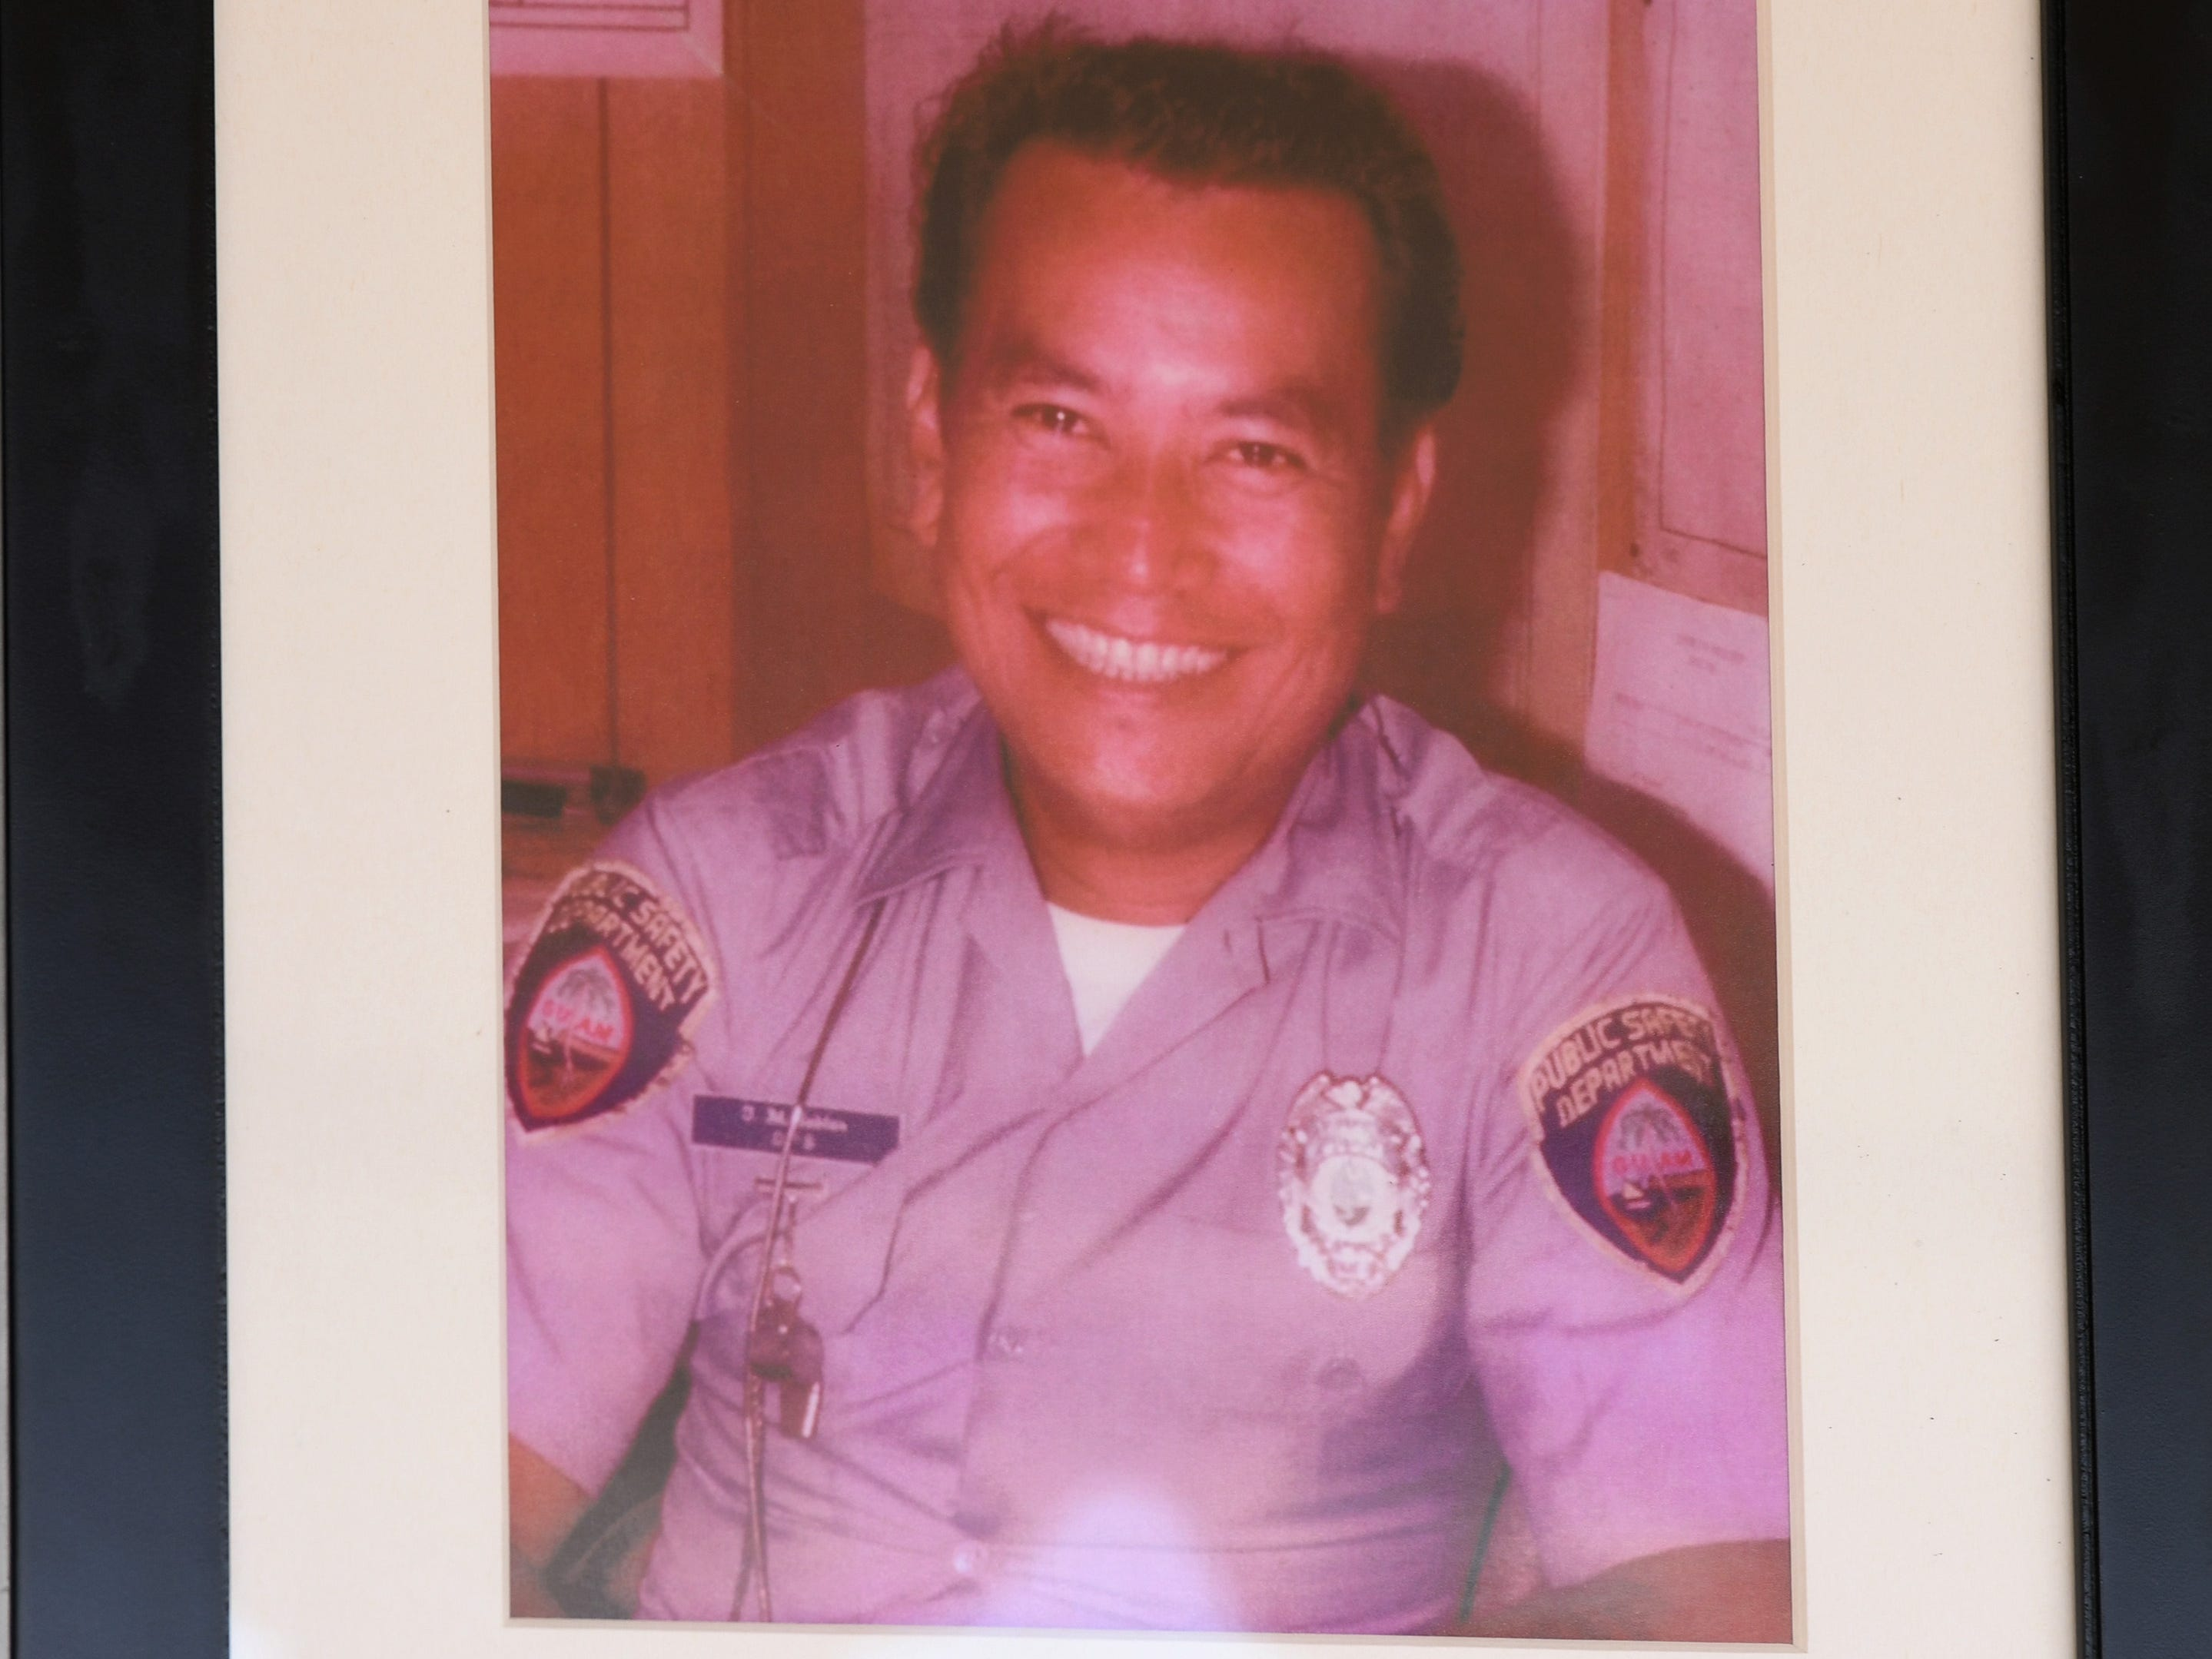 Police Officer Thomas Sablan